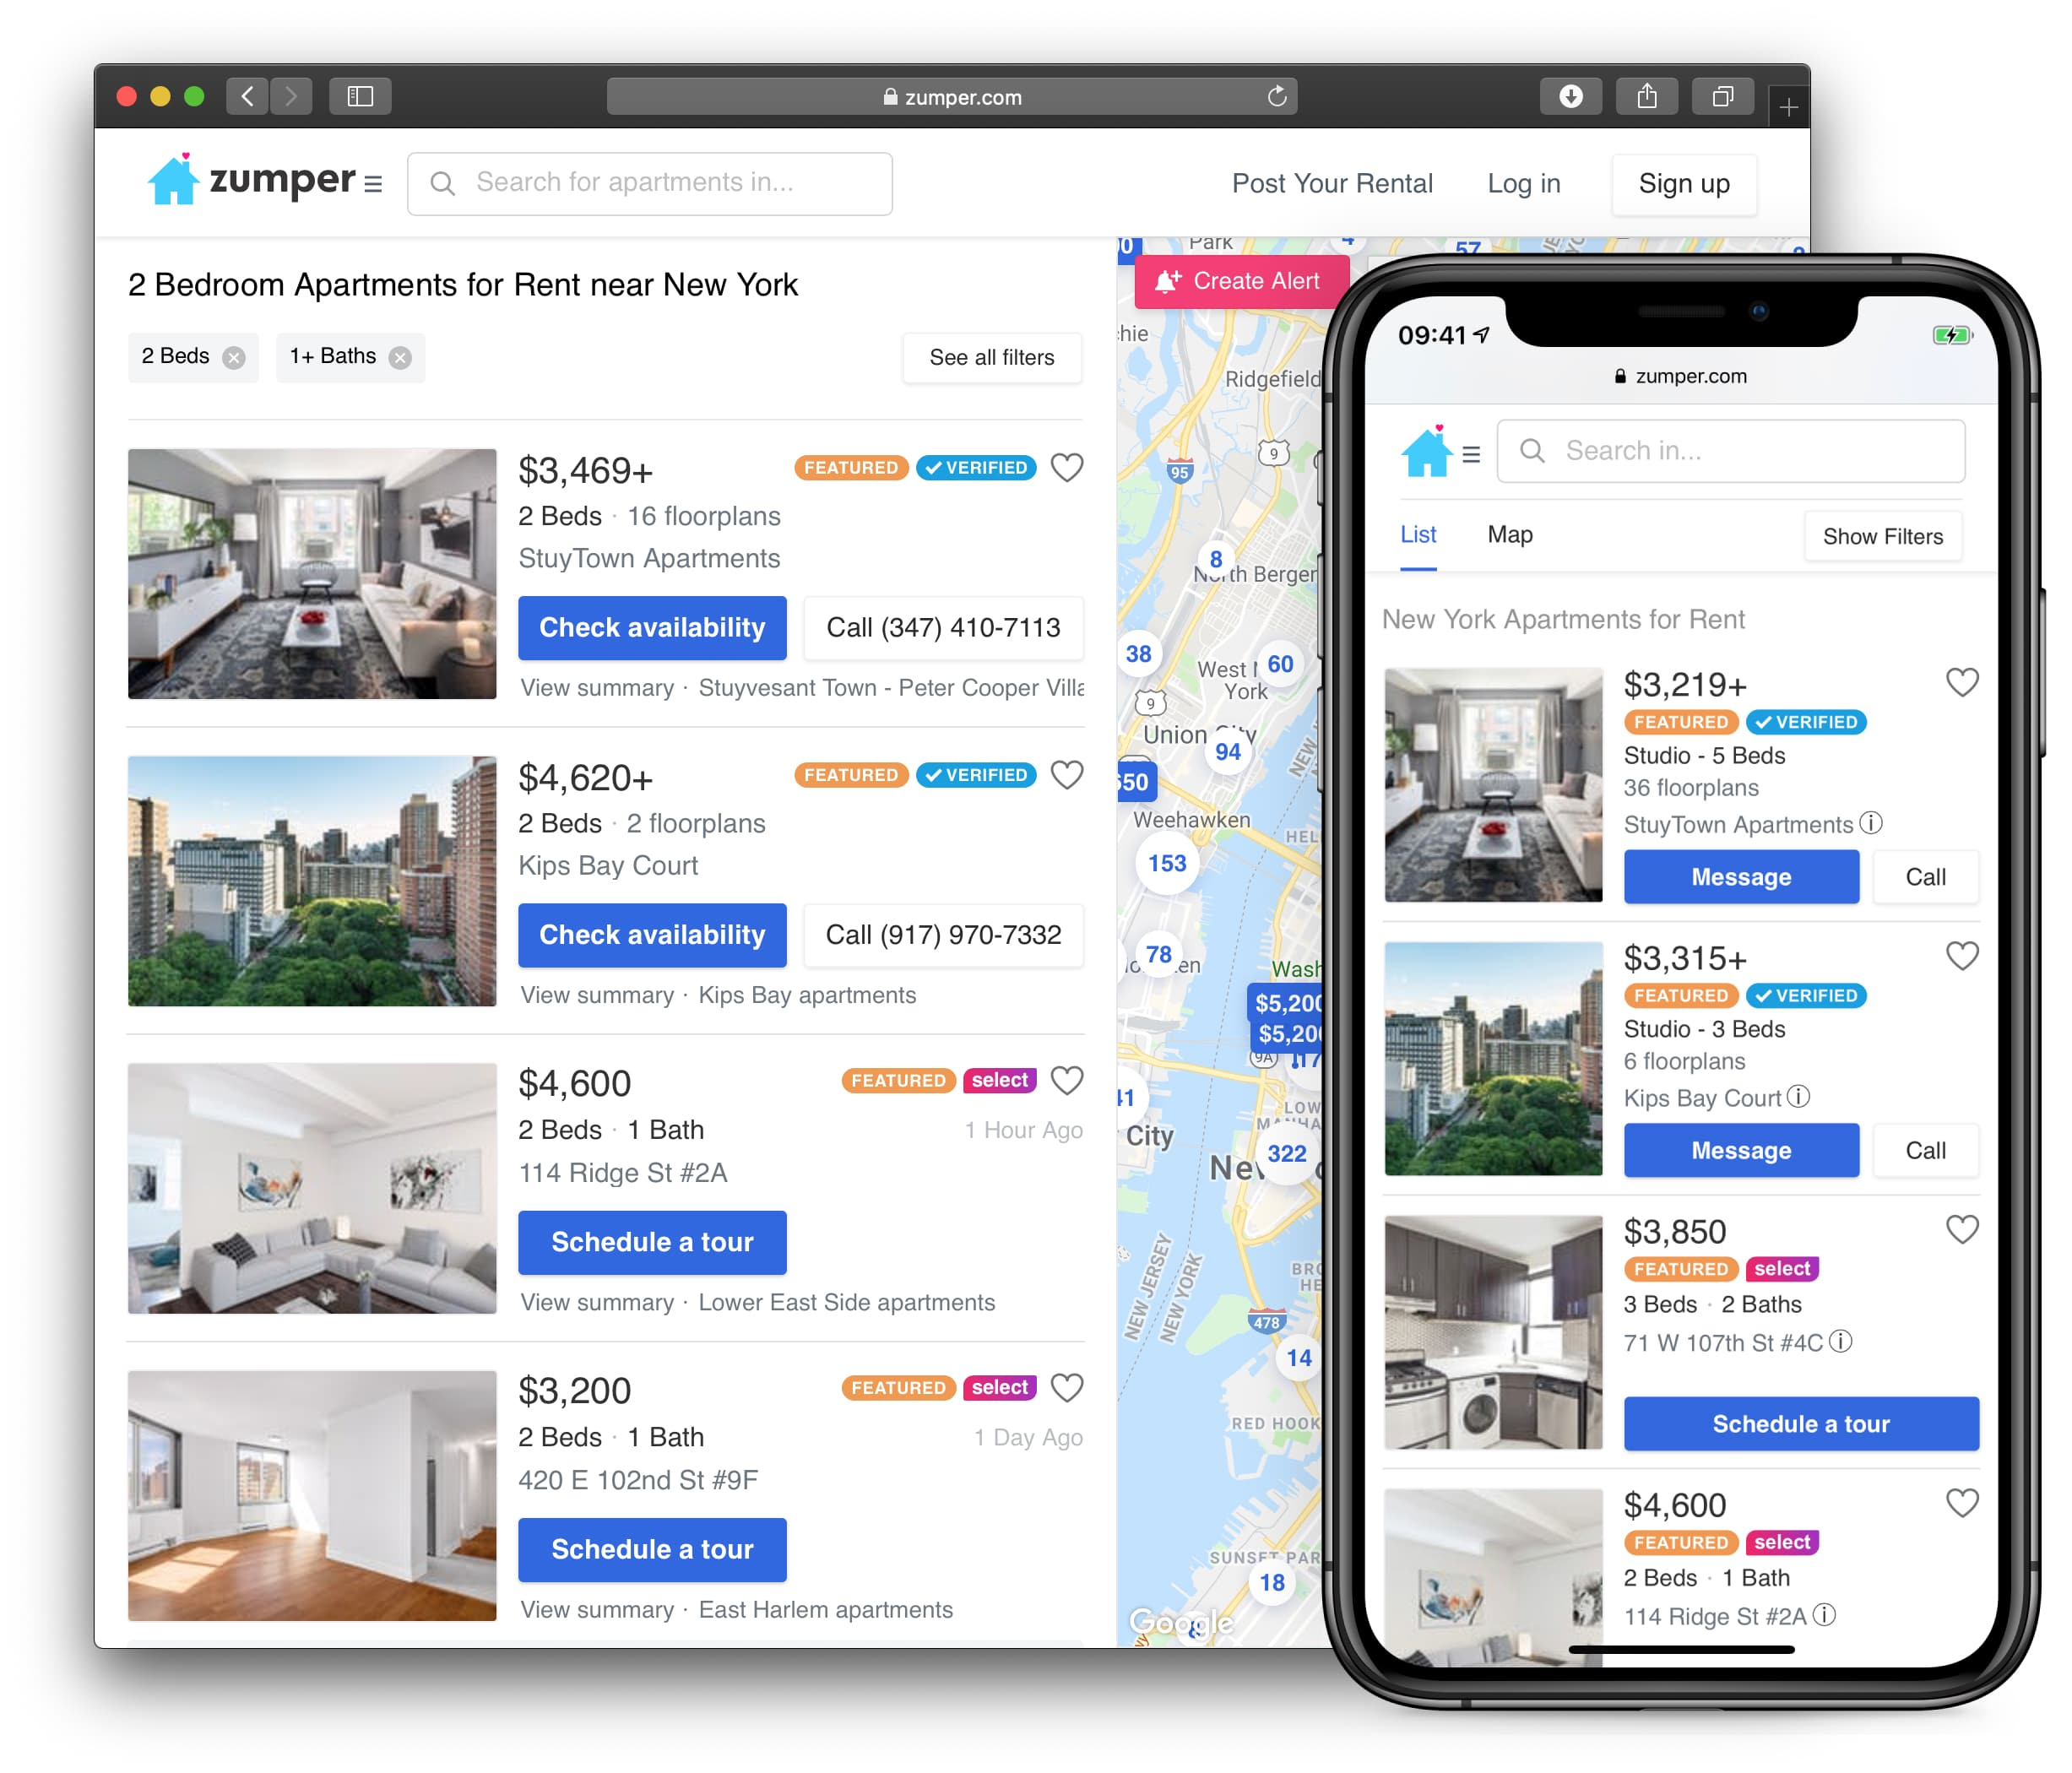 Listings in search results view of Zumper.com